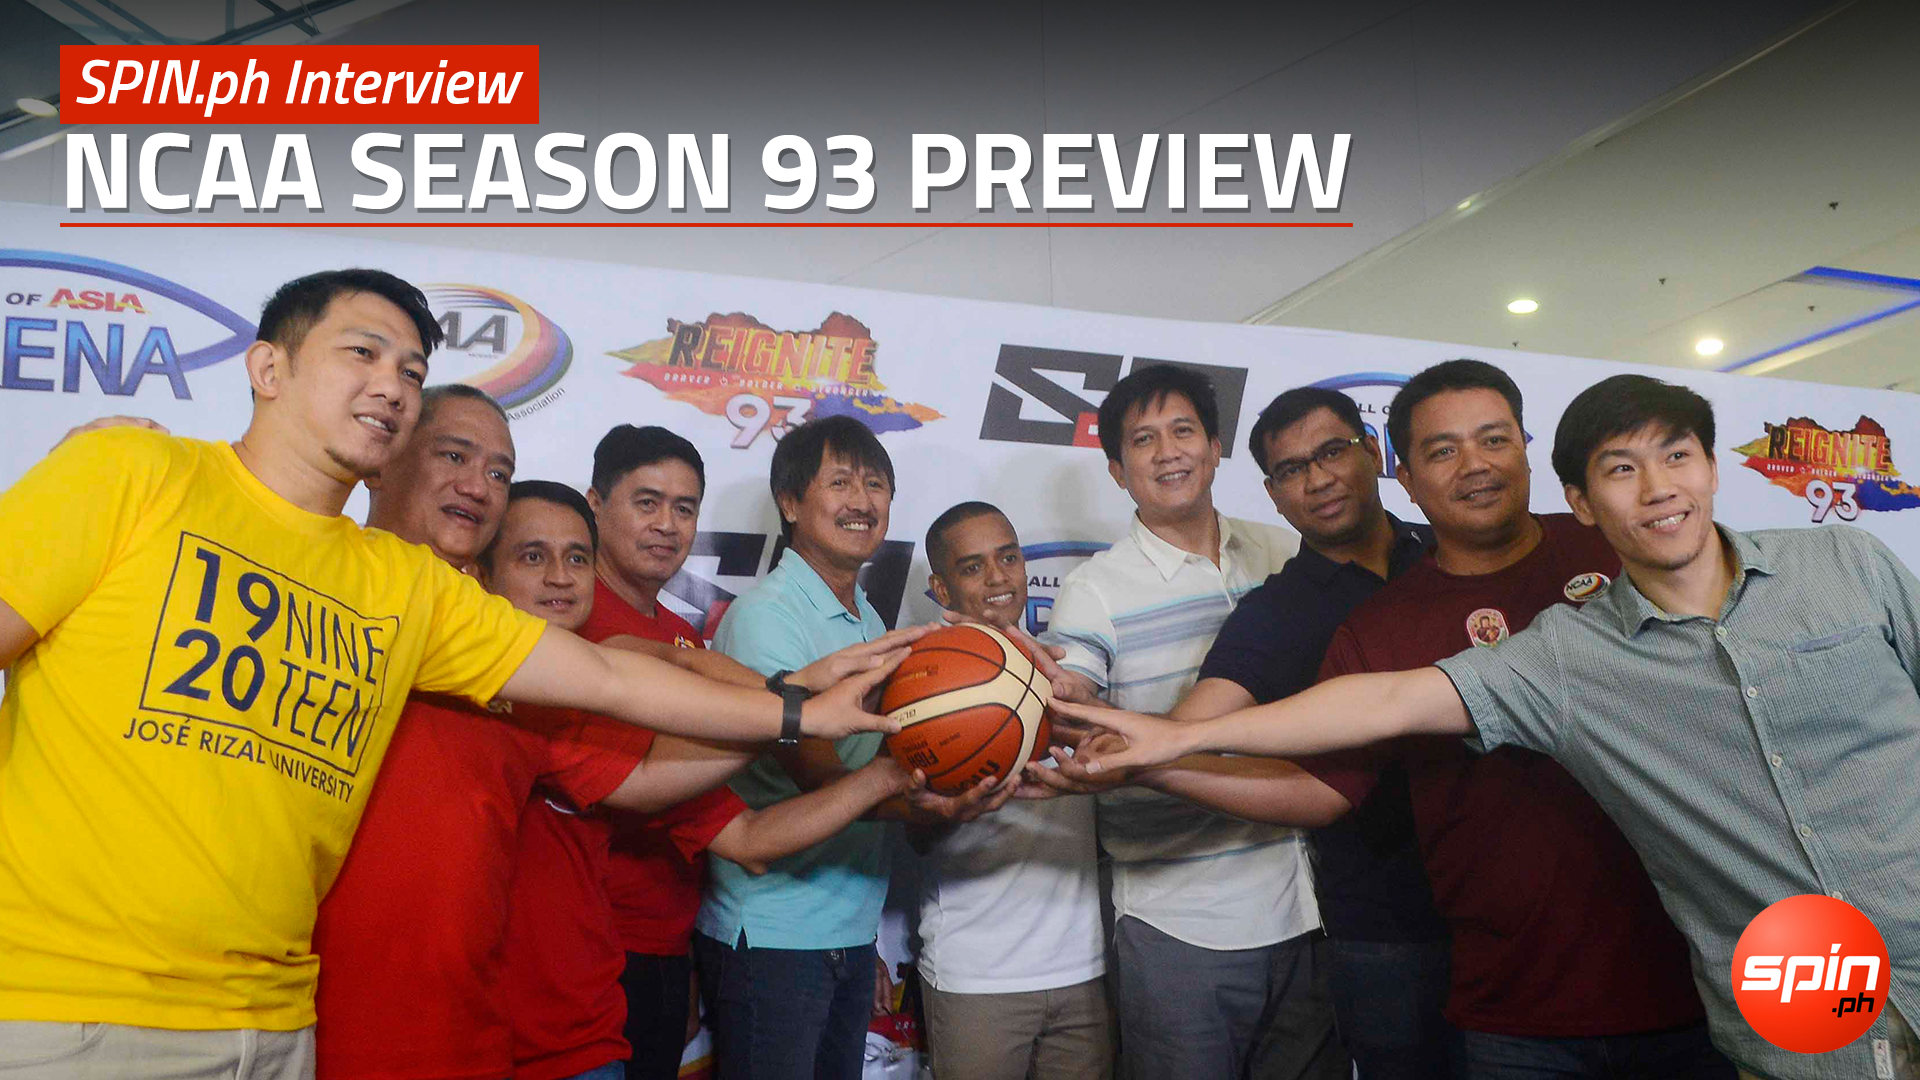 SPIN.ph Interview: NCAA Season 93 Preview (Part 2)